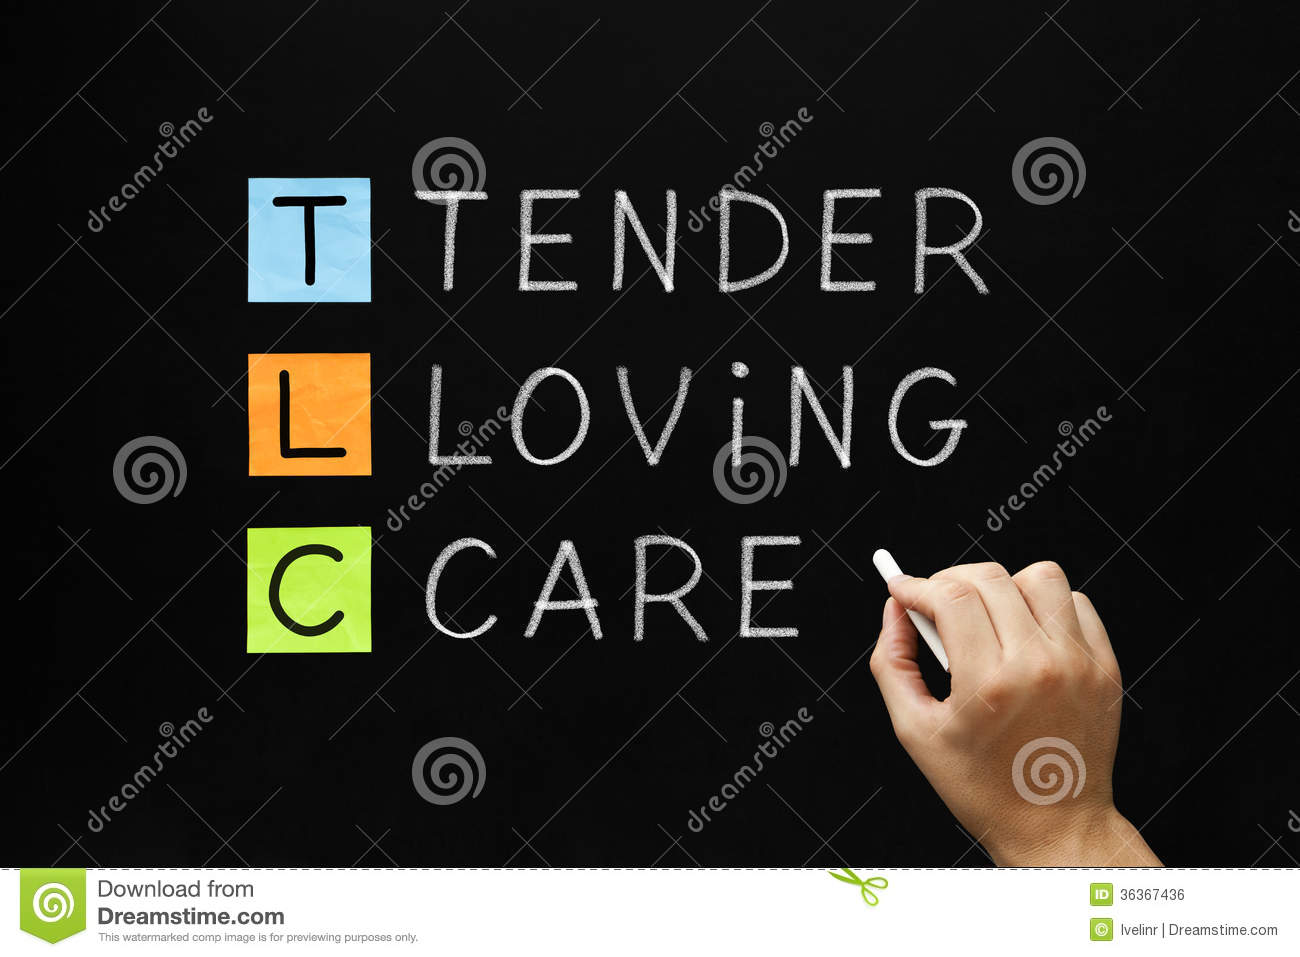 Tender loving care video game